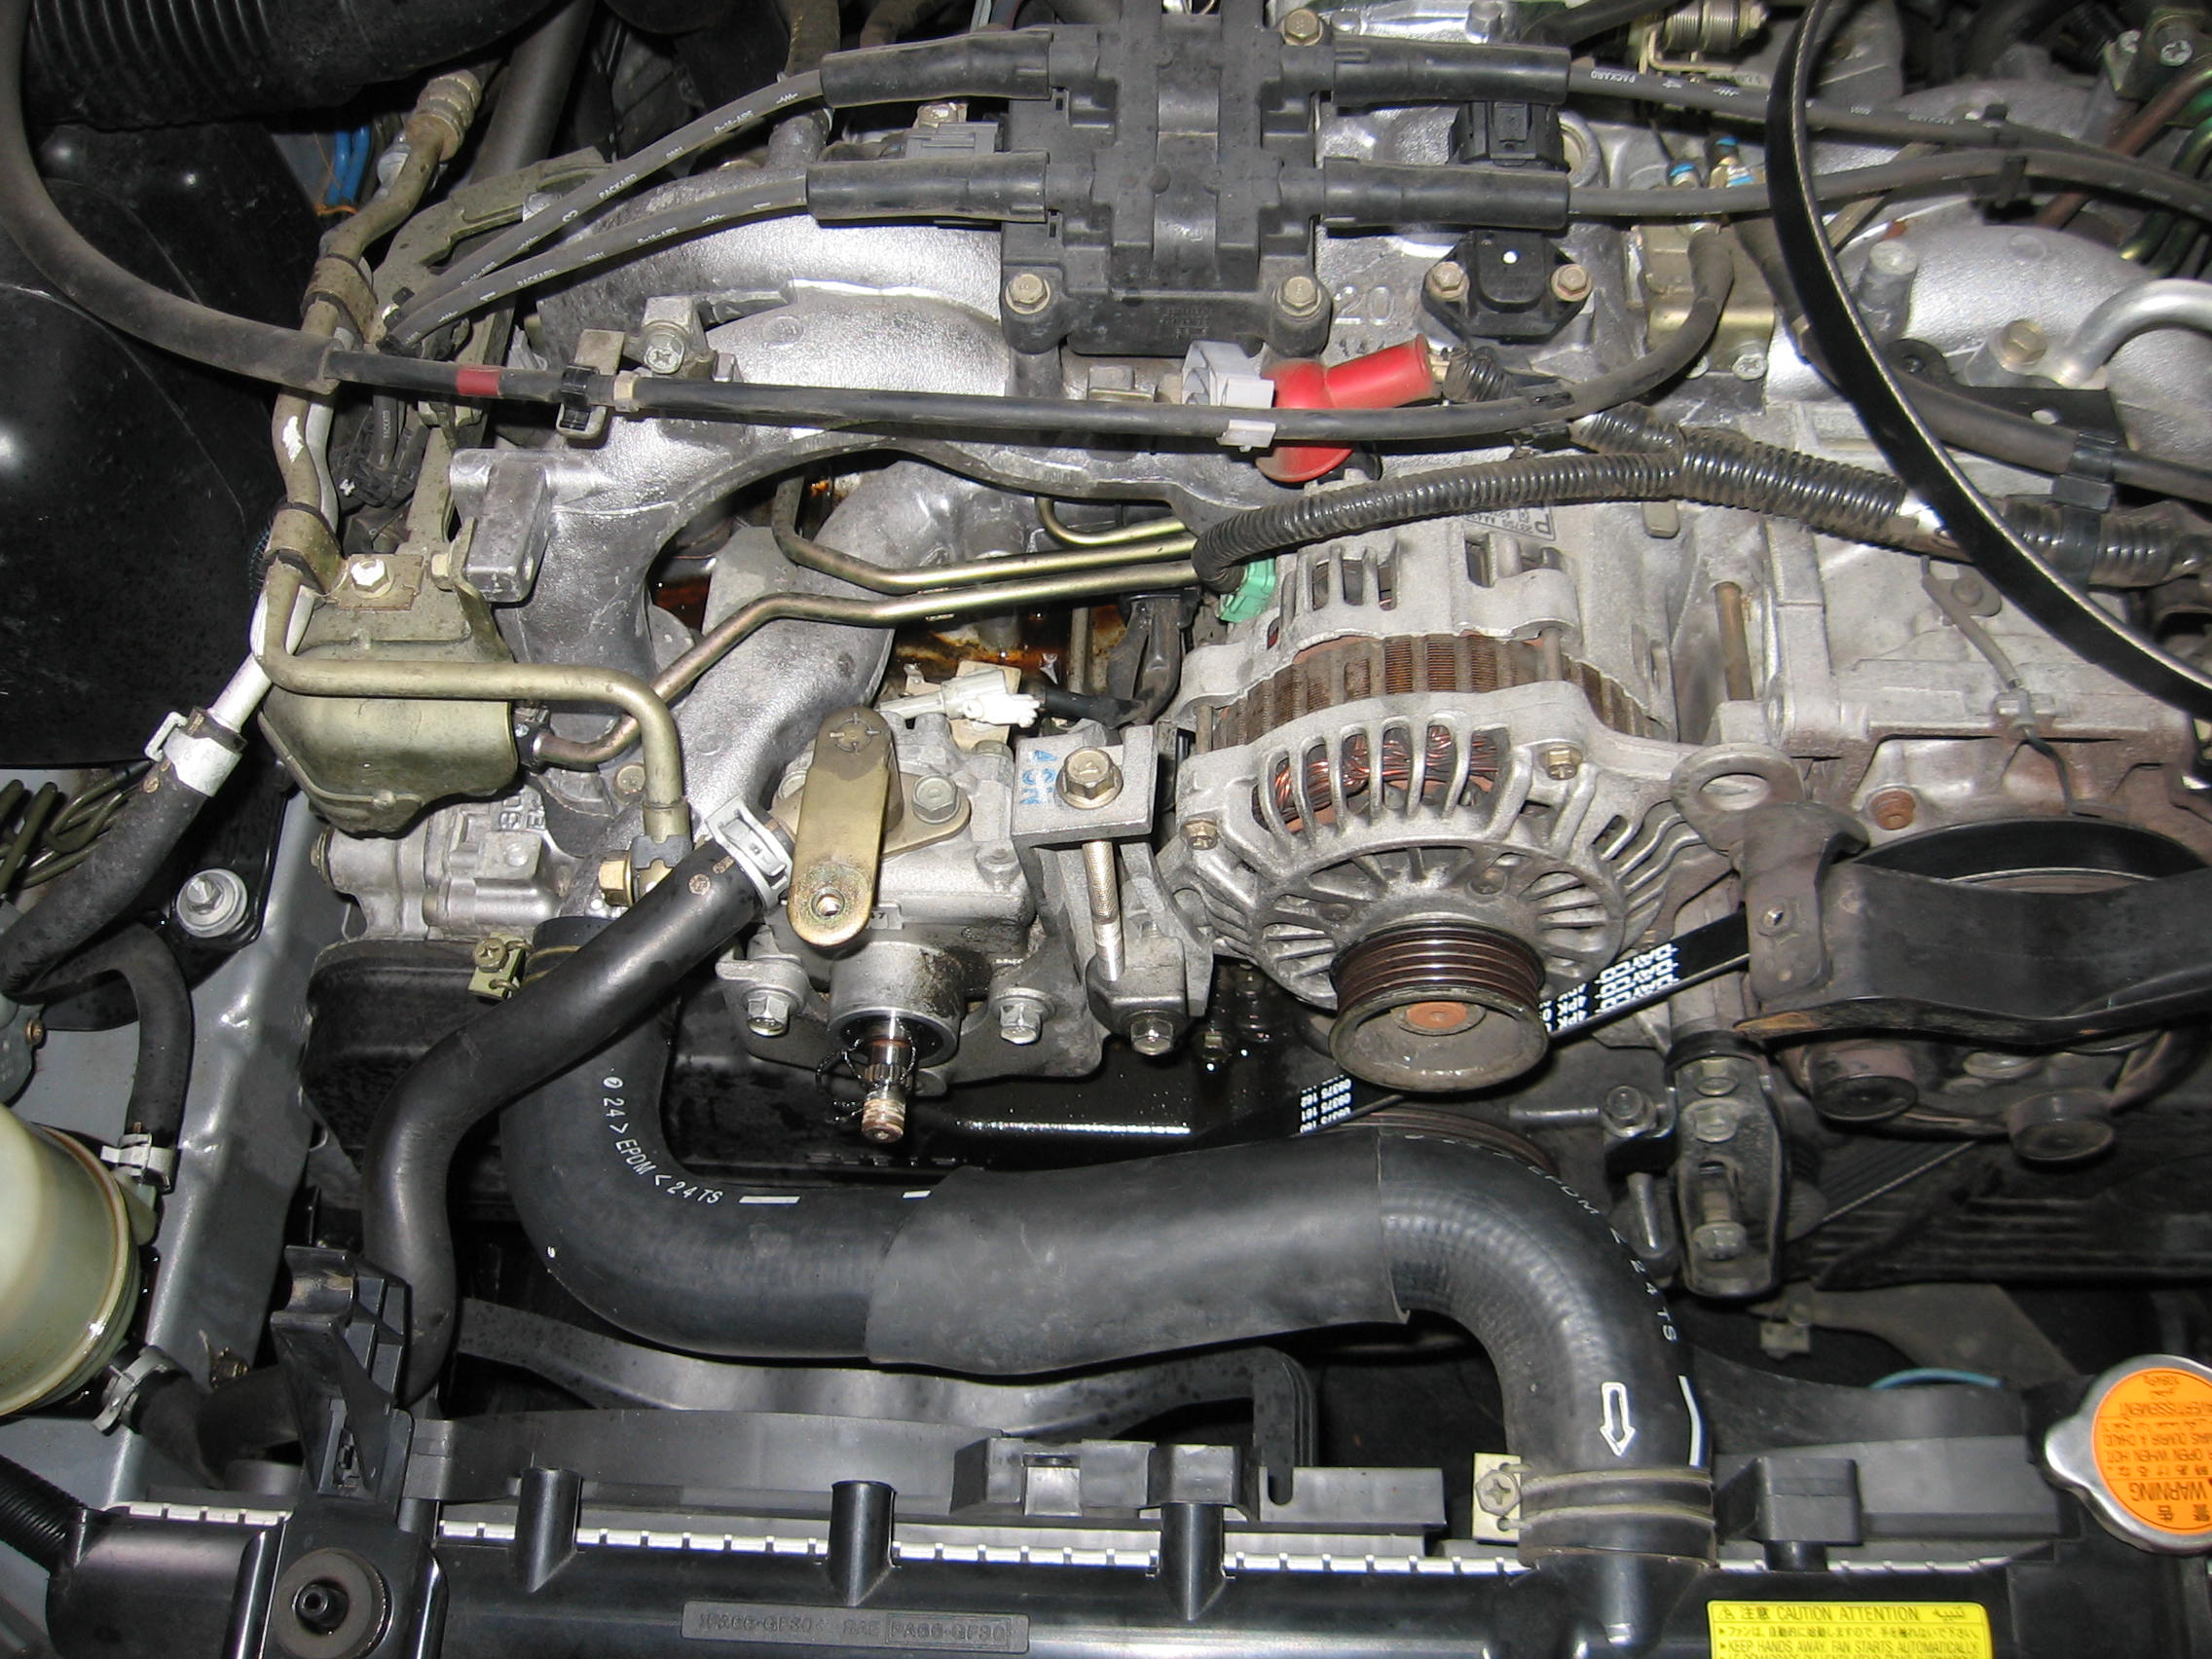 e46 engine bay diagram 2005 bmw e46 engine bay diagram